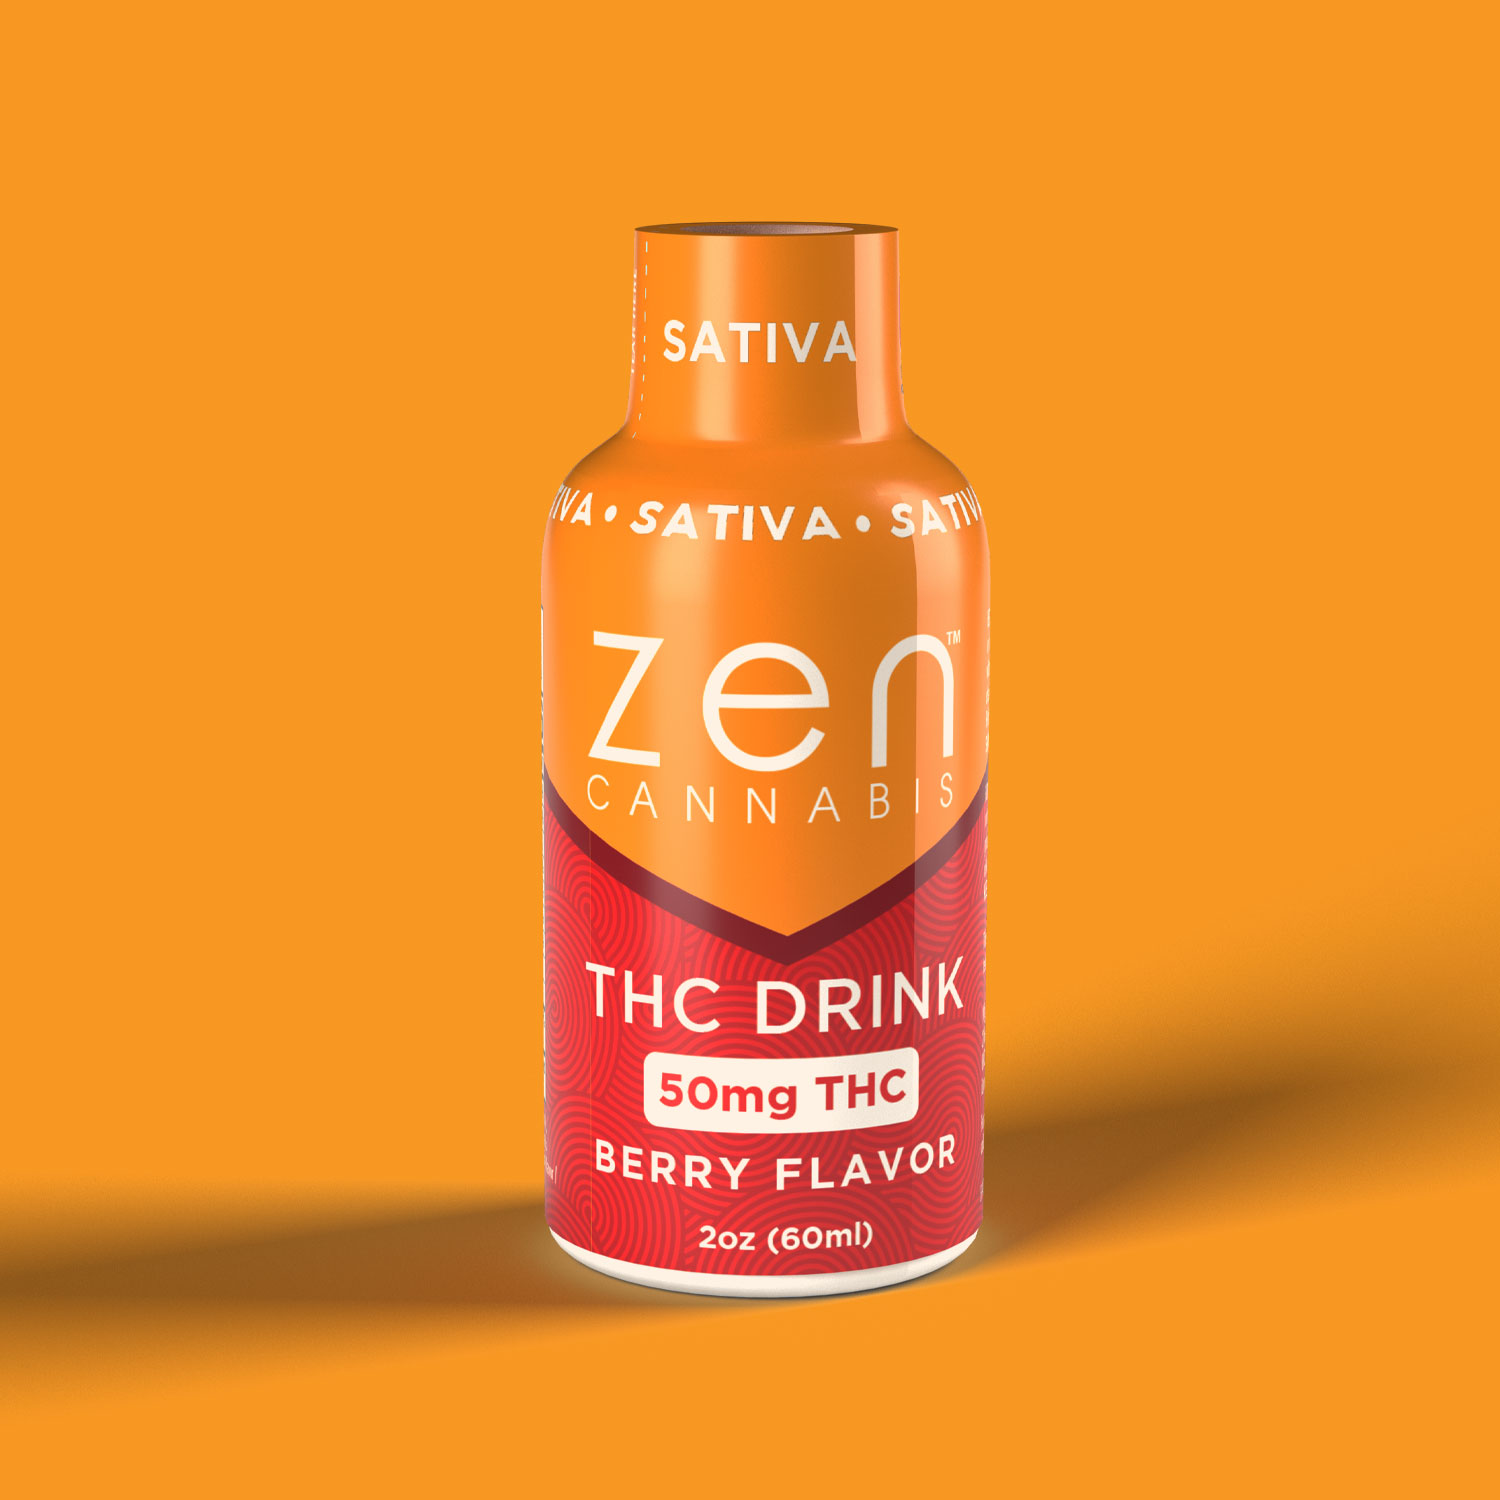 SATIVA | 50mg THC A two-ounce burst of delectably sweet berry flavor to make your aches and pains melt away without the dragging you down. This sativa drink will invigorate your taste buds and keep you relaxed and pain-free without putting you to sleep. 50mg THC per bottle | 2oz (60ml)